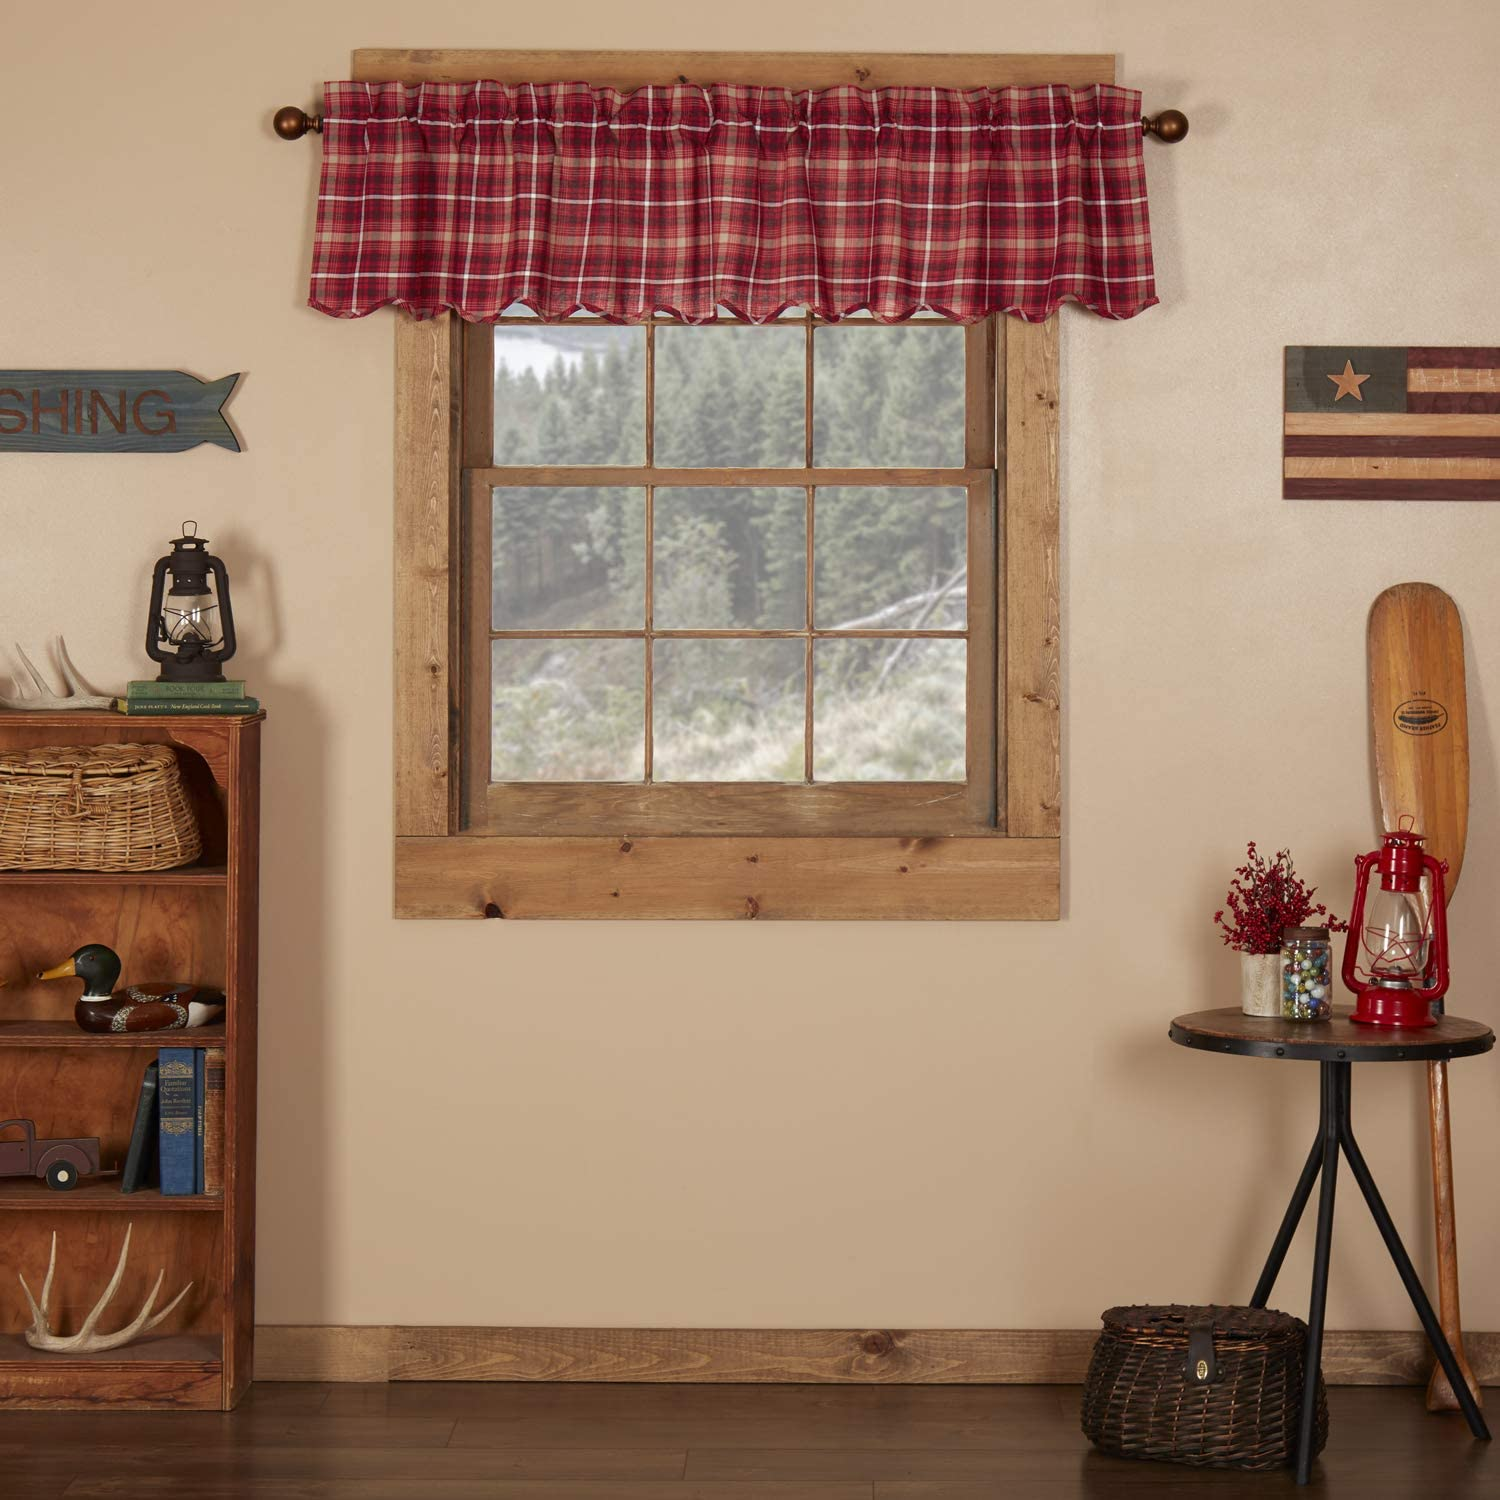 VHC Brands Americana Rustic & Lodge Kitchen Window Curtains - Braxton Red Scalloped Valance, 16x72